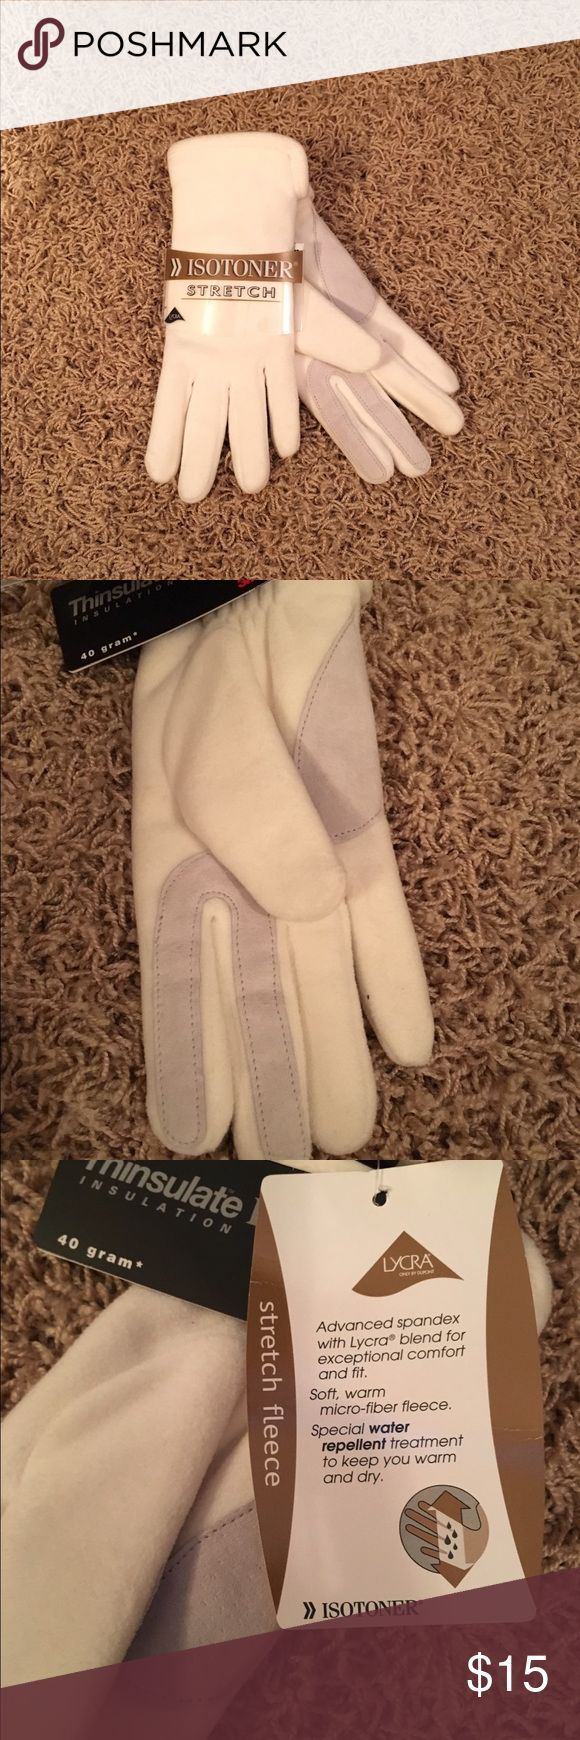 Driving gloves isotoner - White Gloves By Isotoner Nwt Nwt